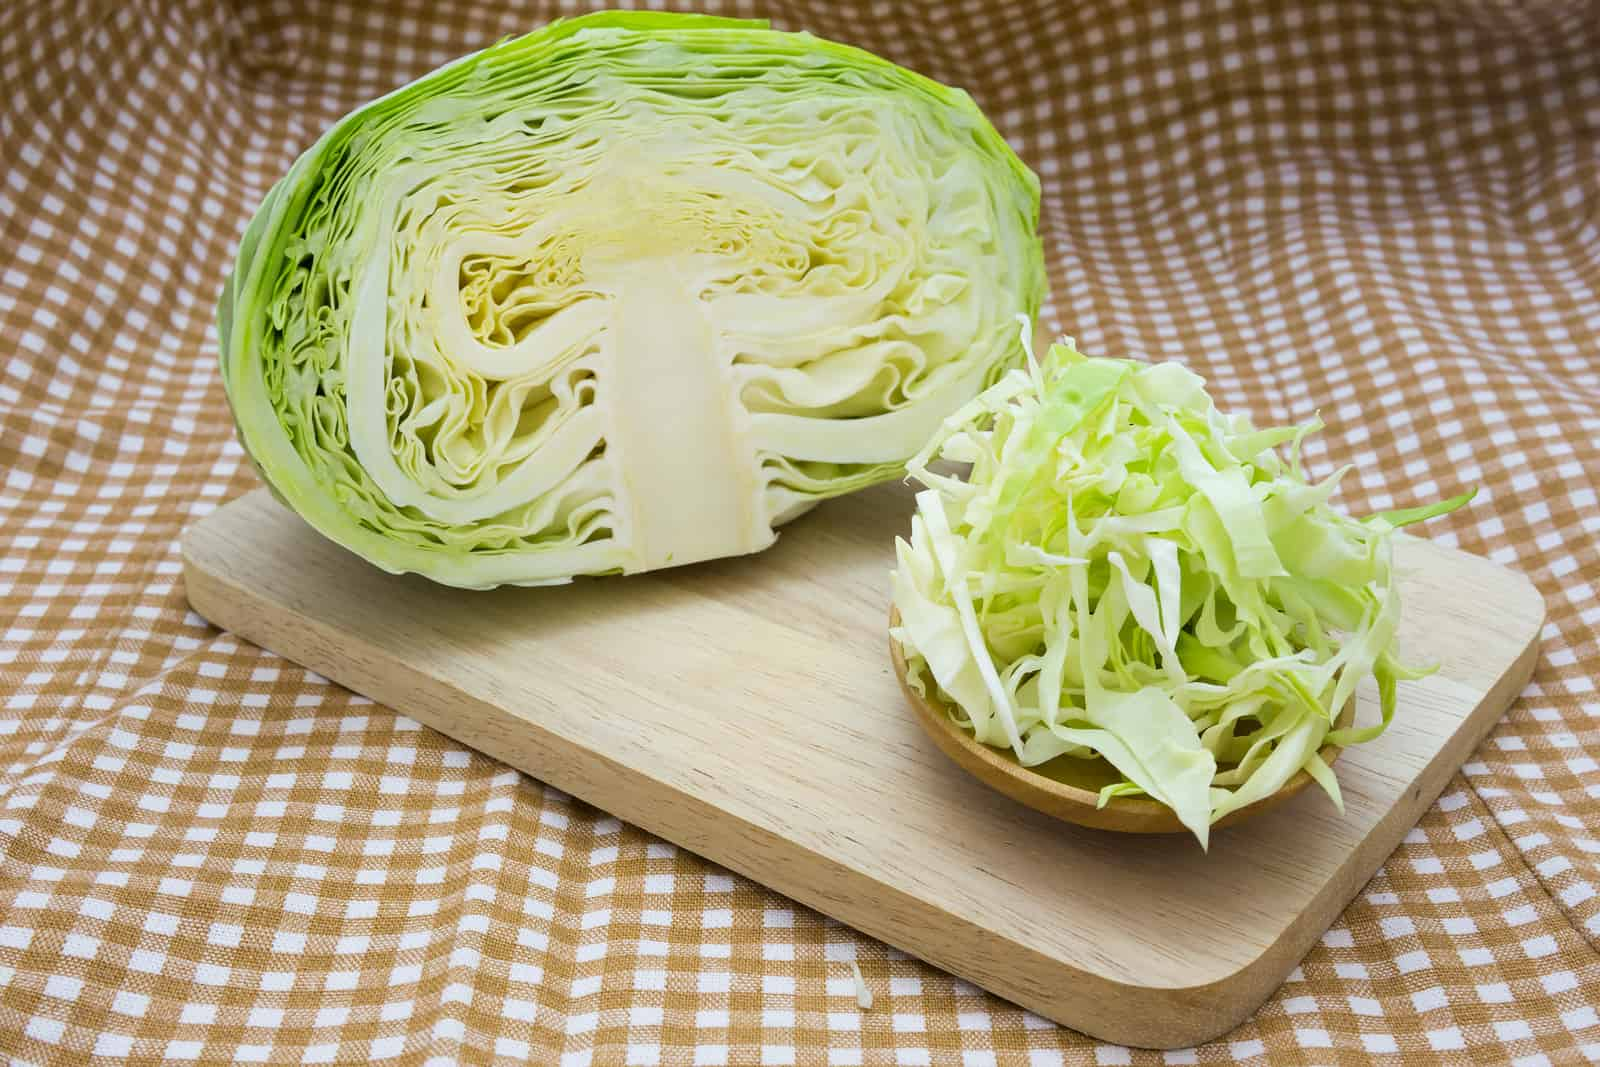 cabbage chili recipe